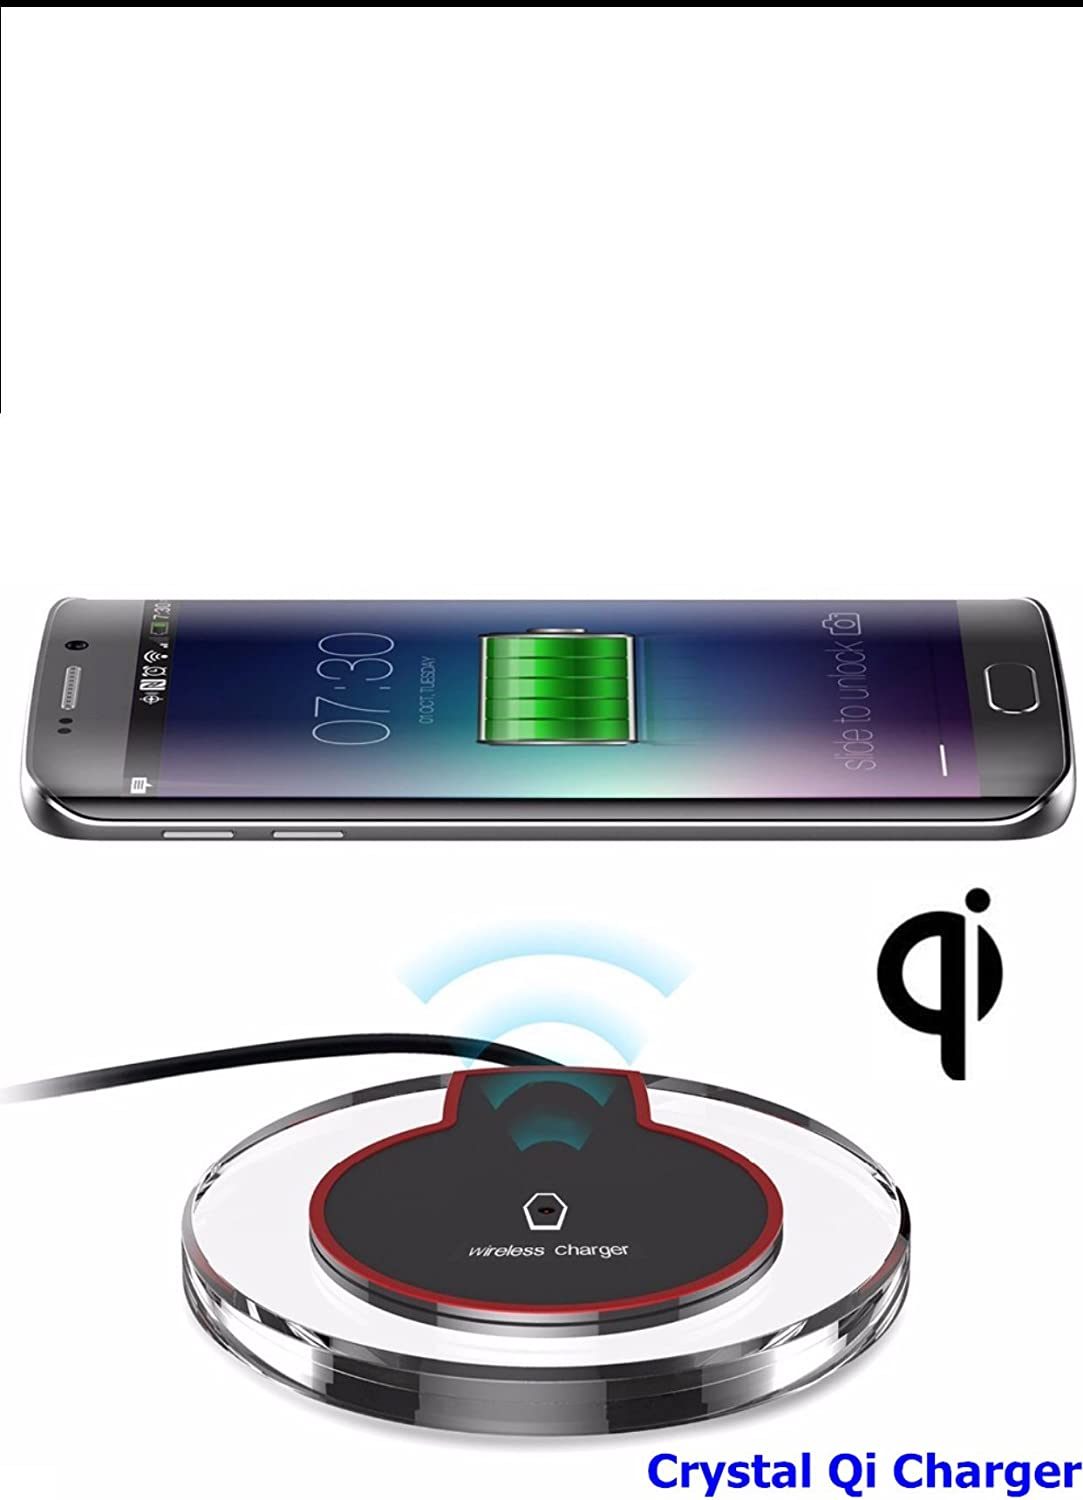 8//8Plus S8//S8 Plus Note8 S7 S7 Edge Note 5 S6 Edge White for Samsung Galaxy S9 Fantasy Wireless Charger Compatible with iPhone X QI Wireless Charging PAD